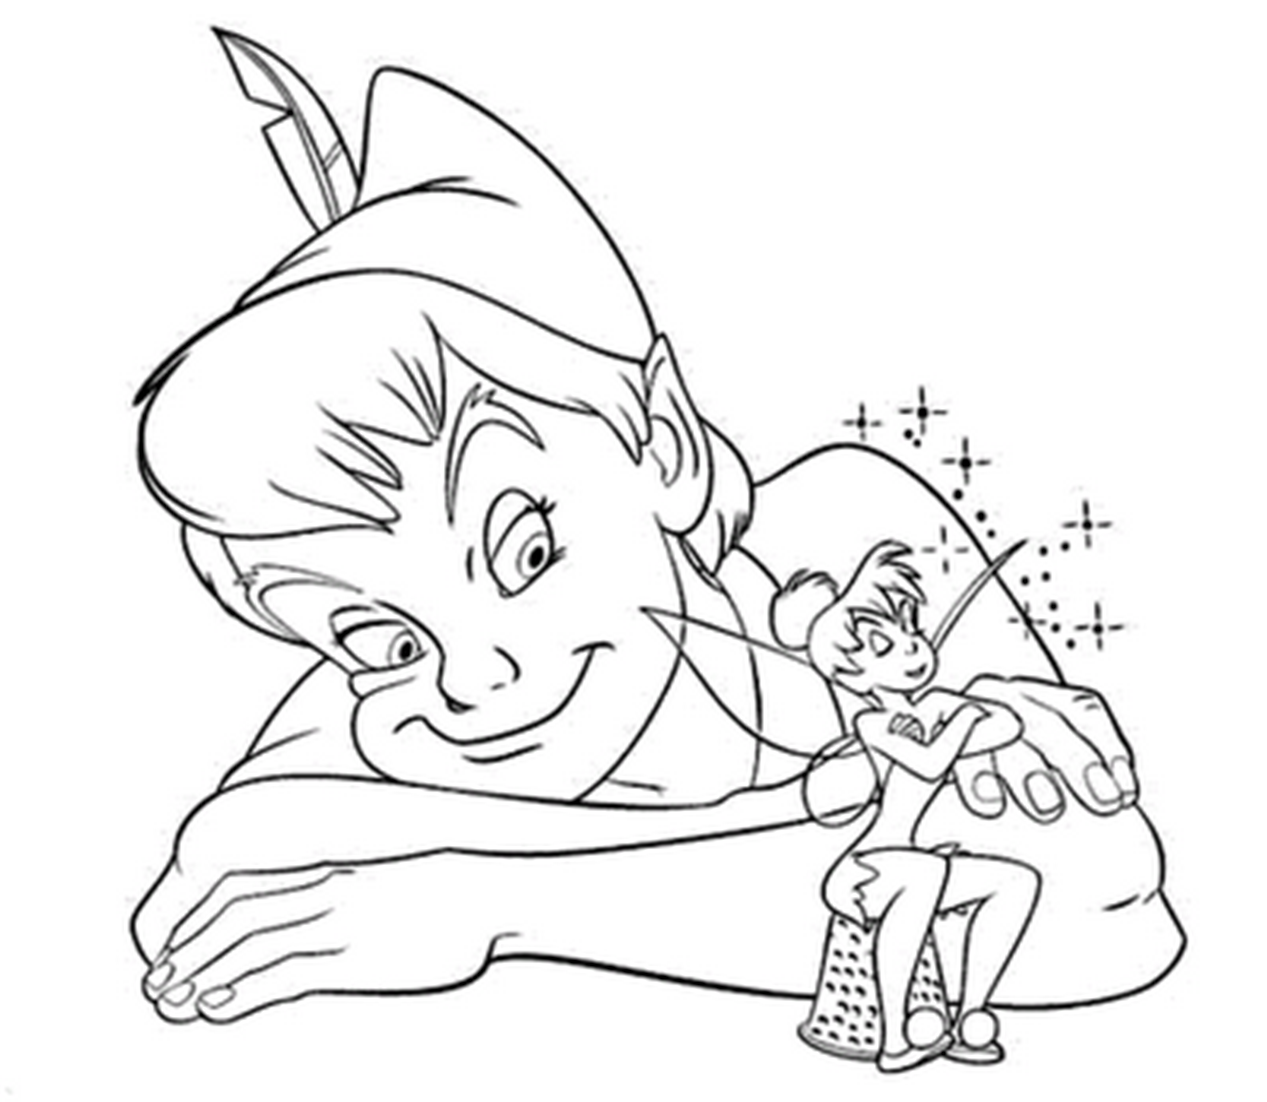 peter pan free coloring pages - photo#18